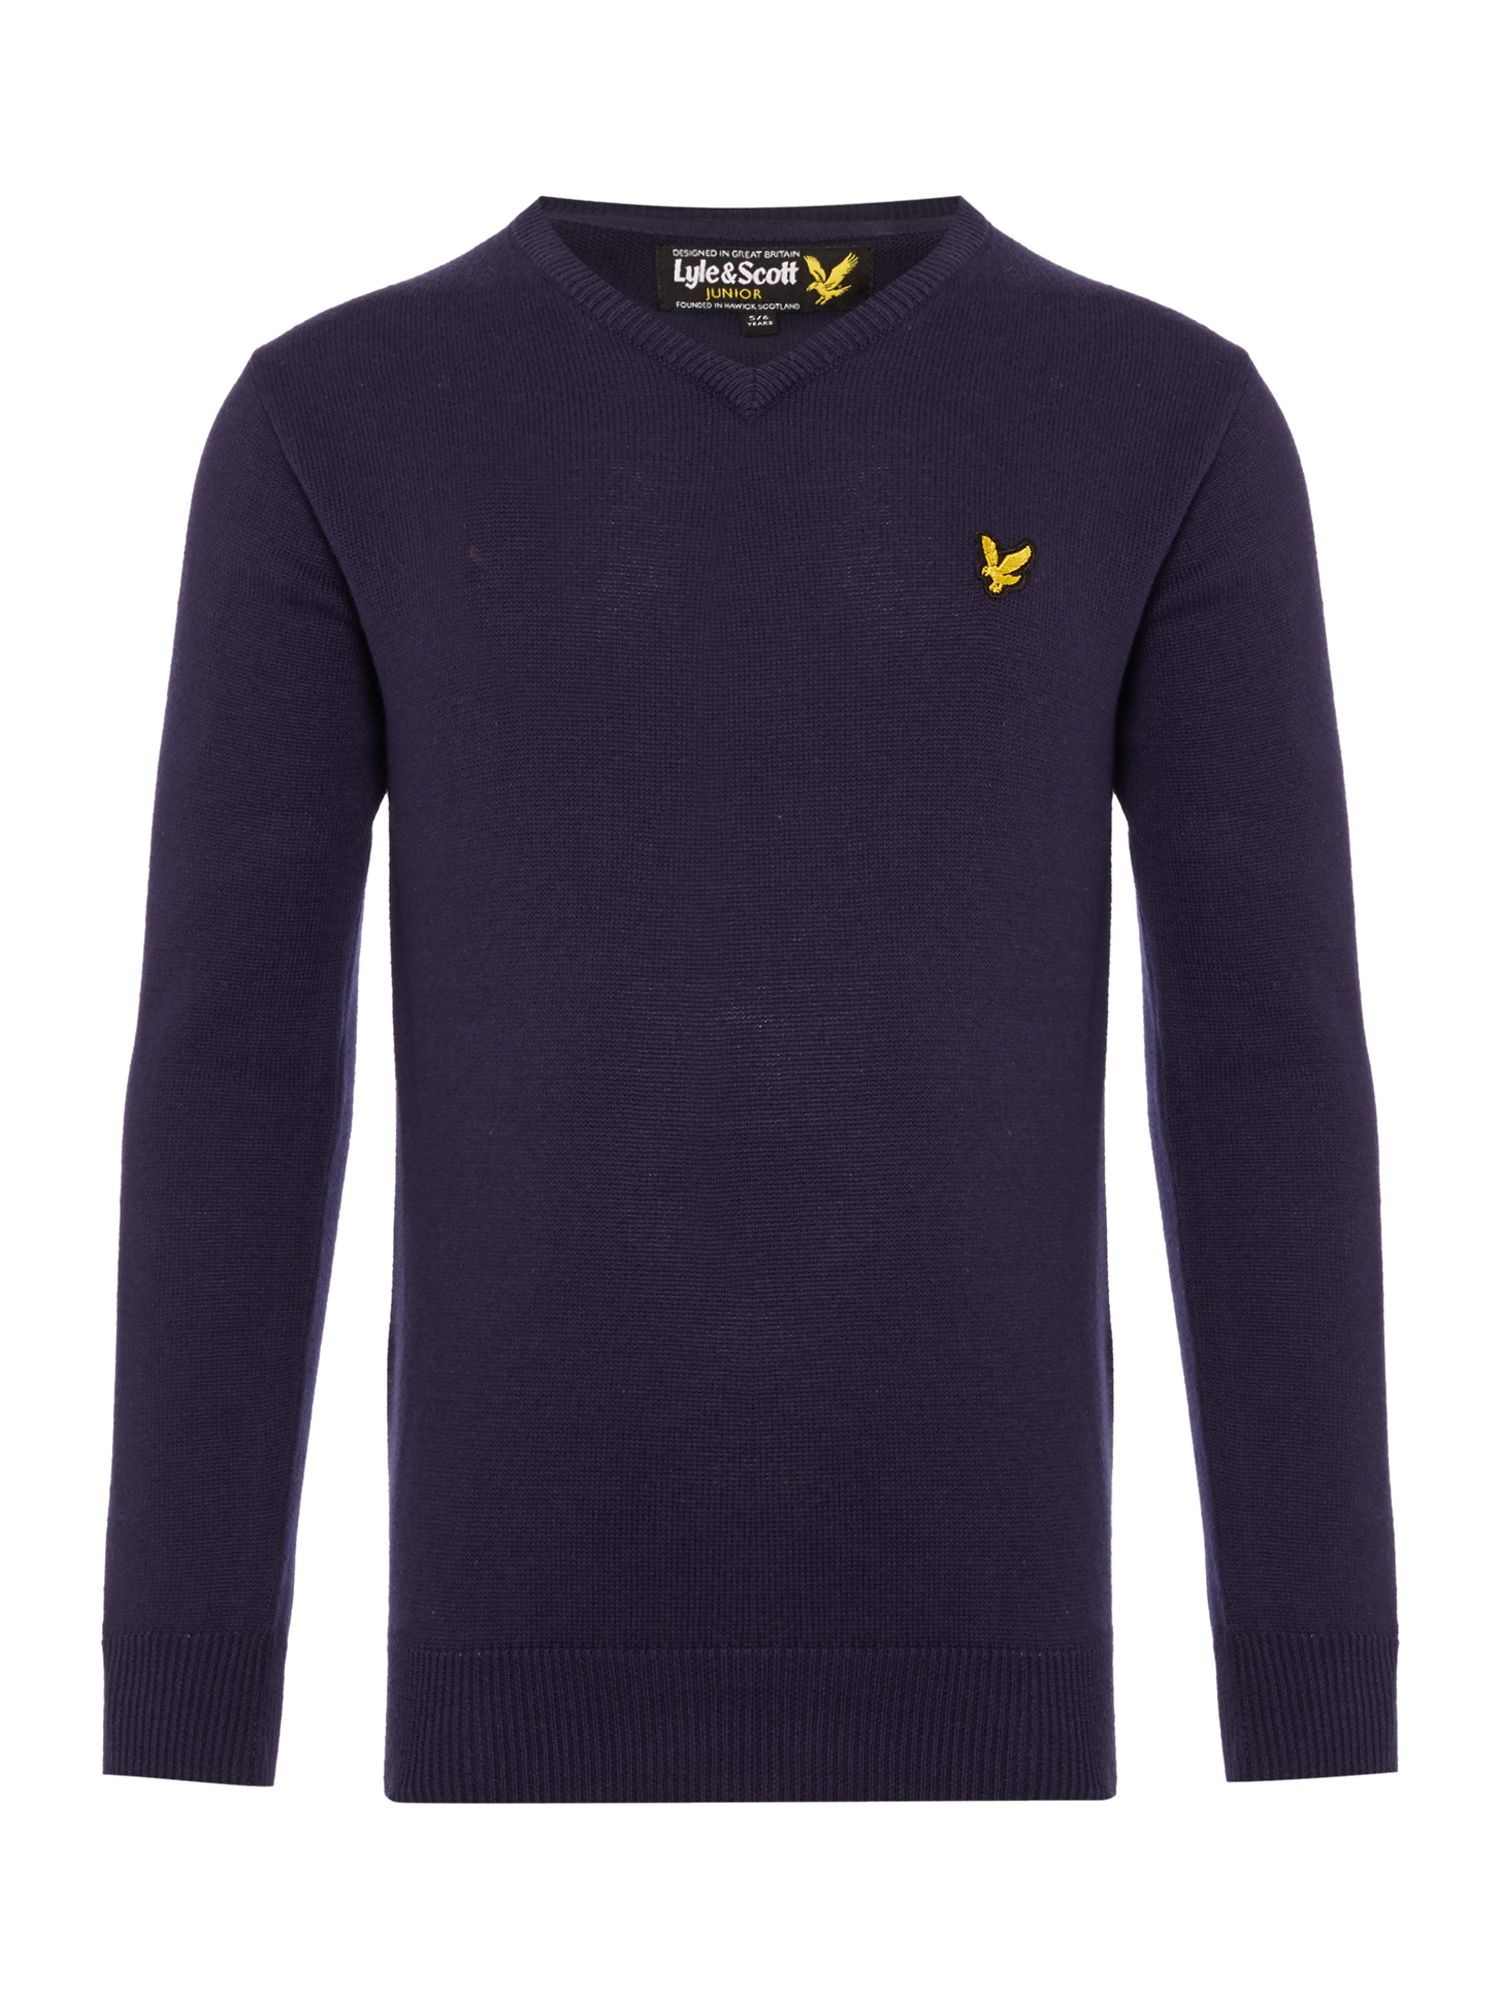 Lyle and Scott Lyle and Scott Boys Classic V Neck Jumper, Navy